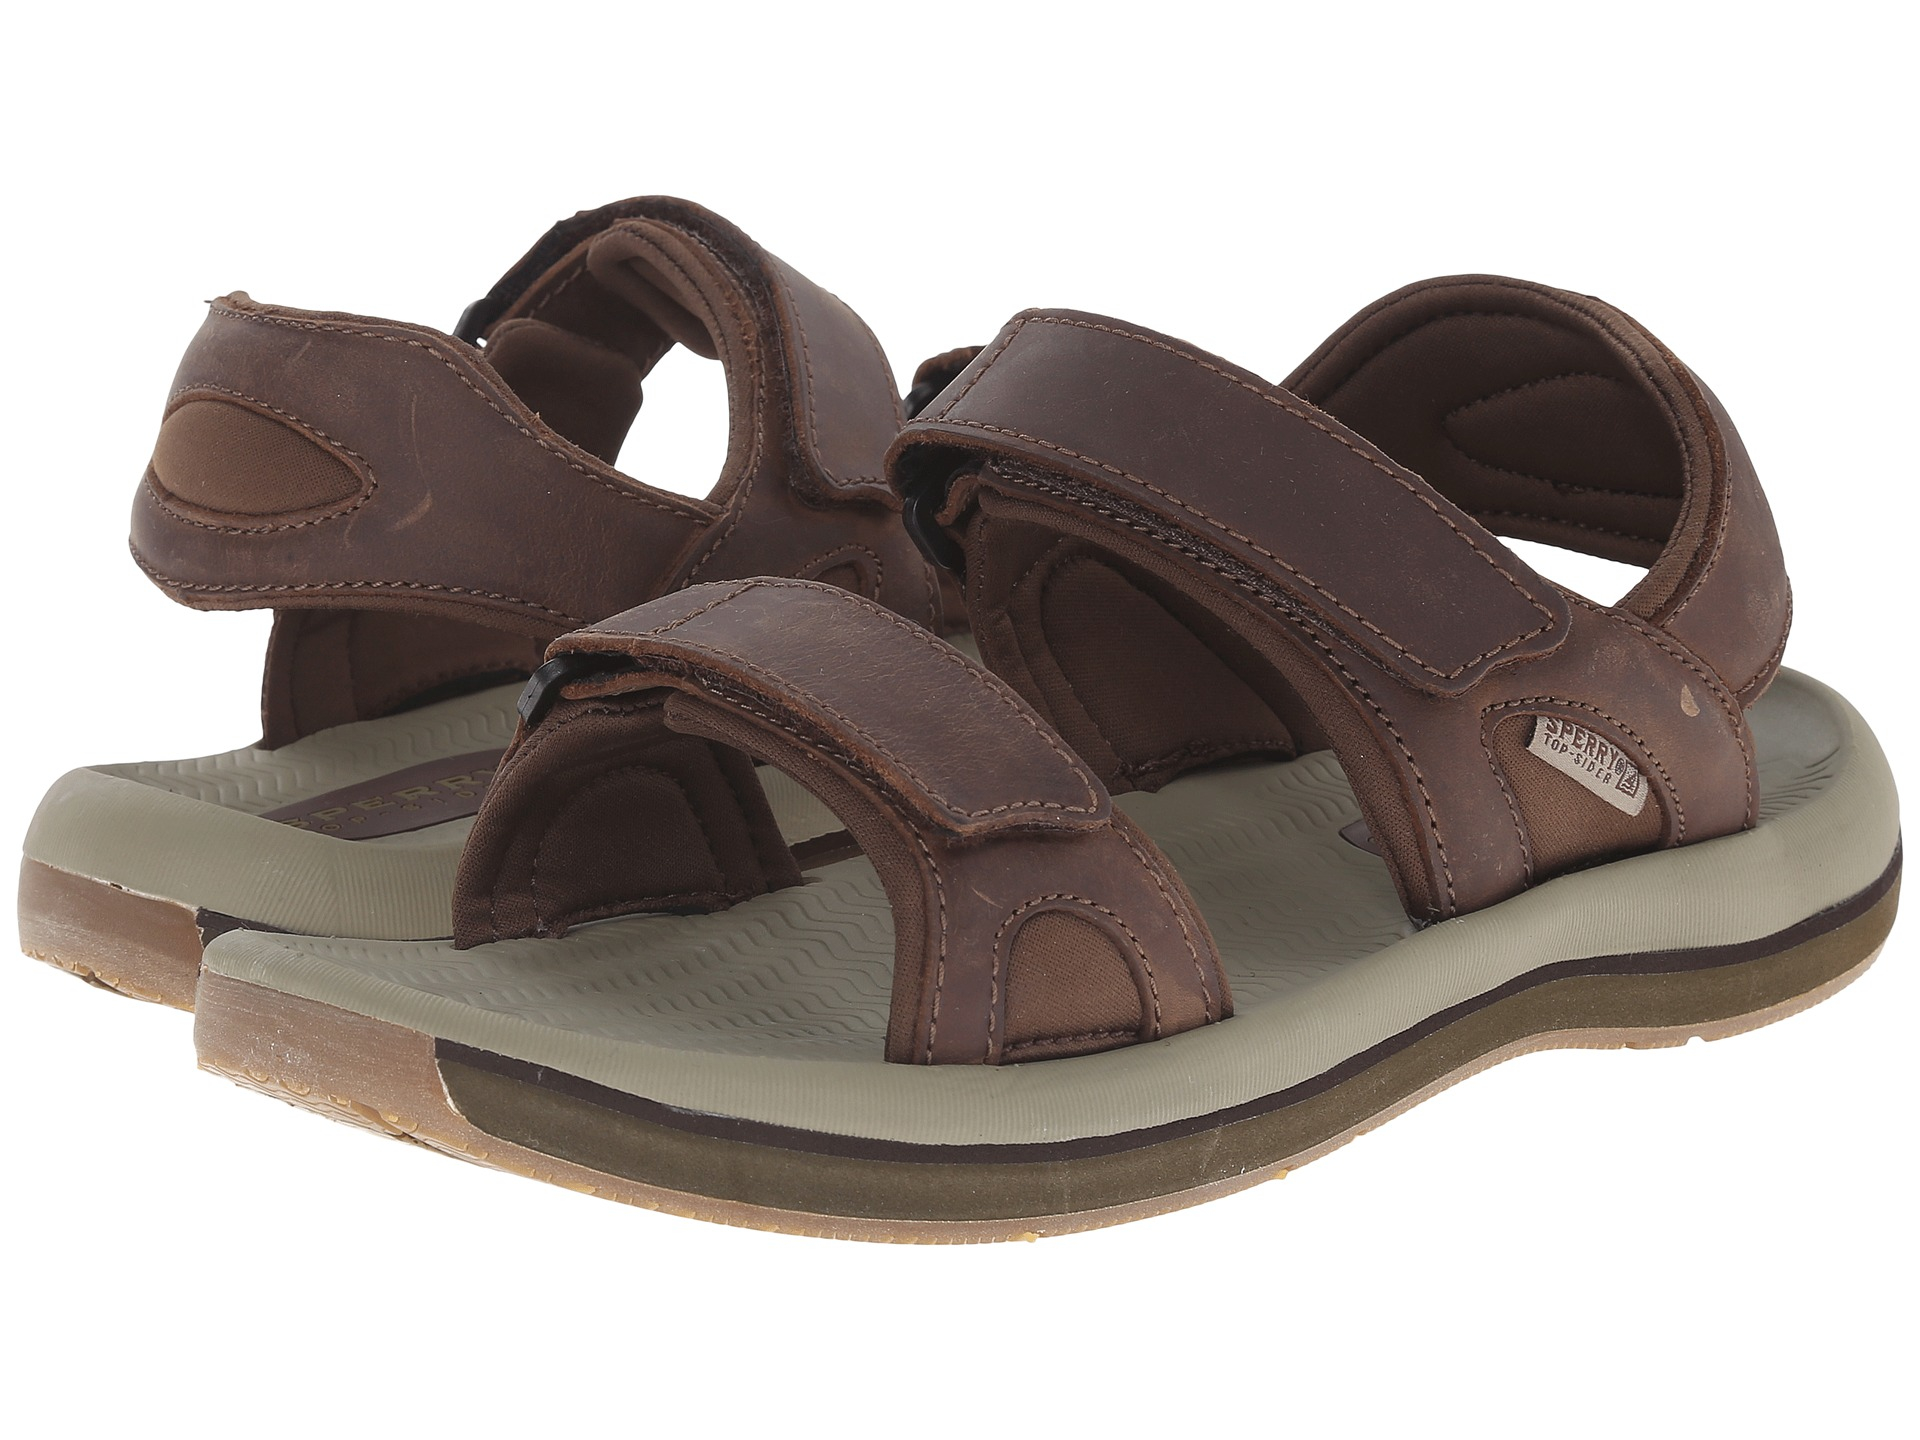 cd44a256c6b9 Lyst - Sperry Top-Sider Santa Cruz 2 Strap in Brown for Men